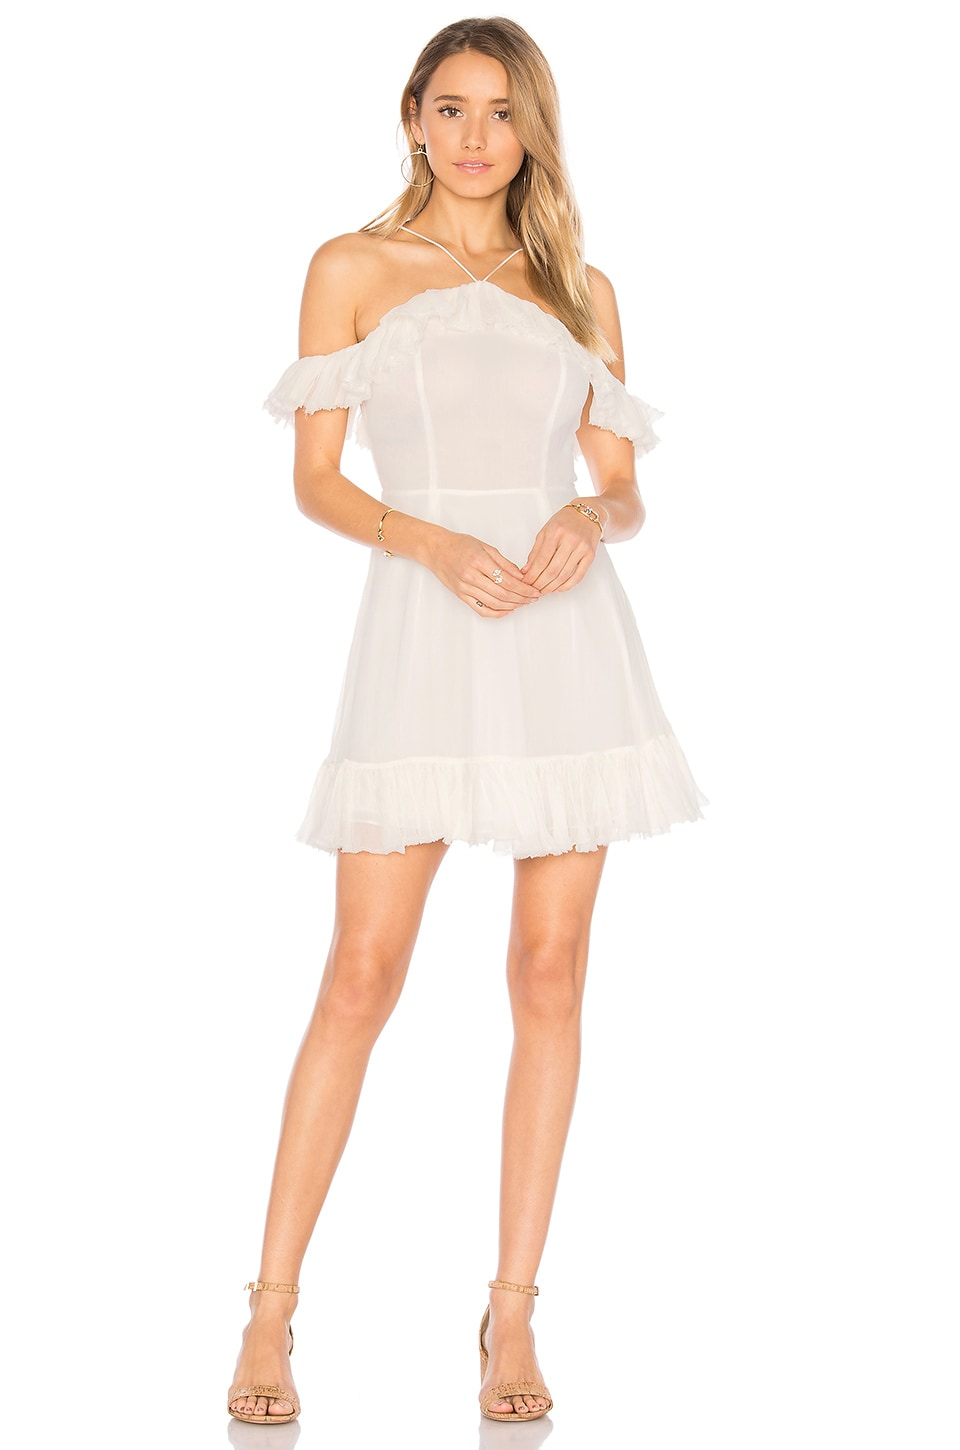 MAJORELLE x REVOLVE Zuni Dress in Ivory